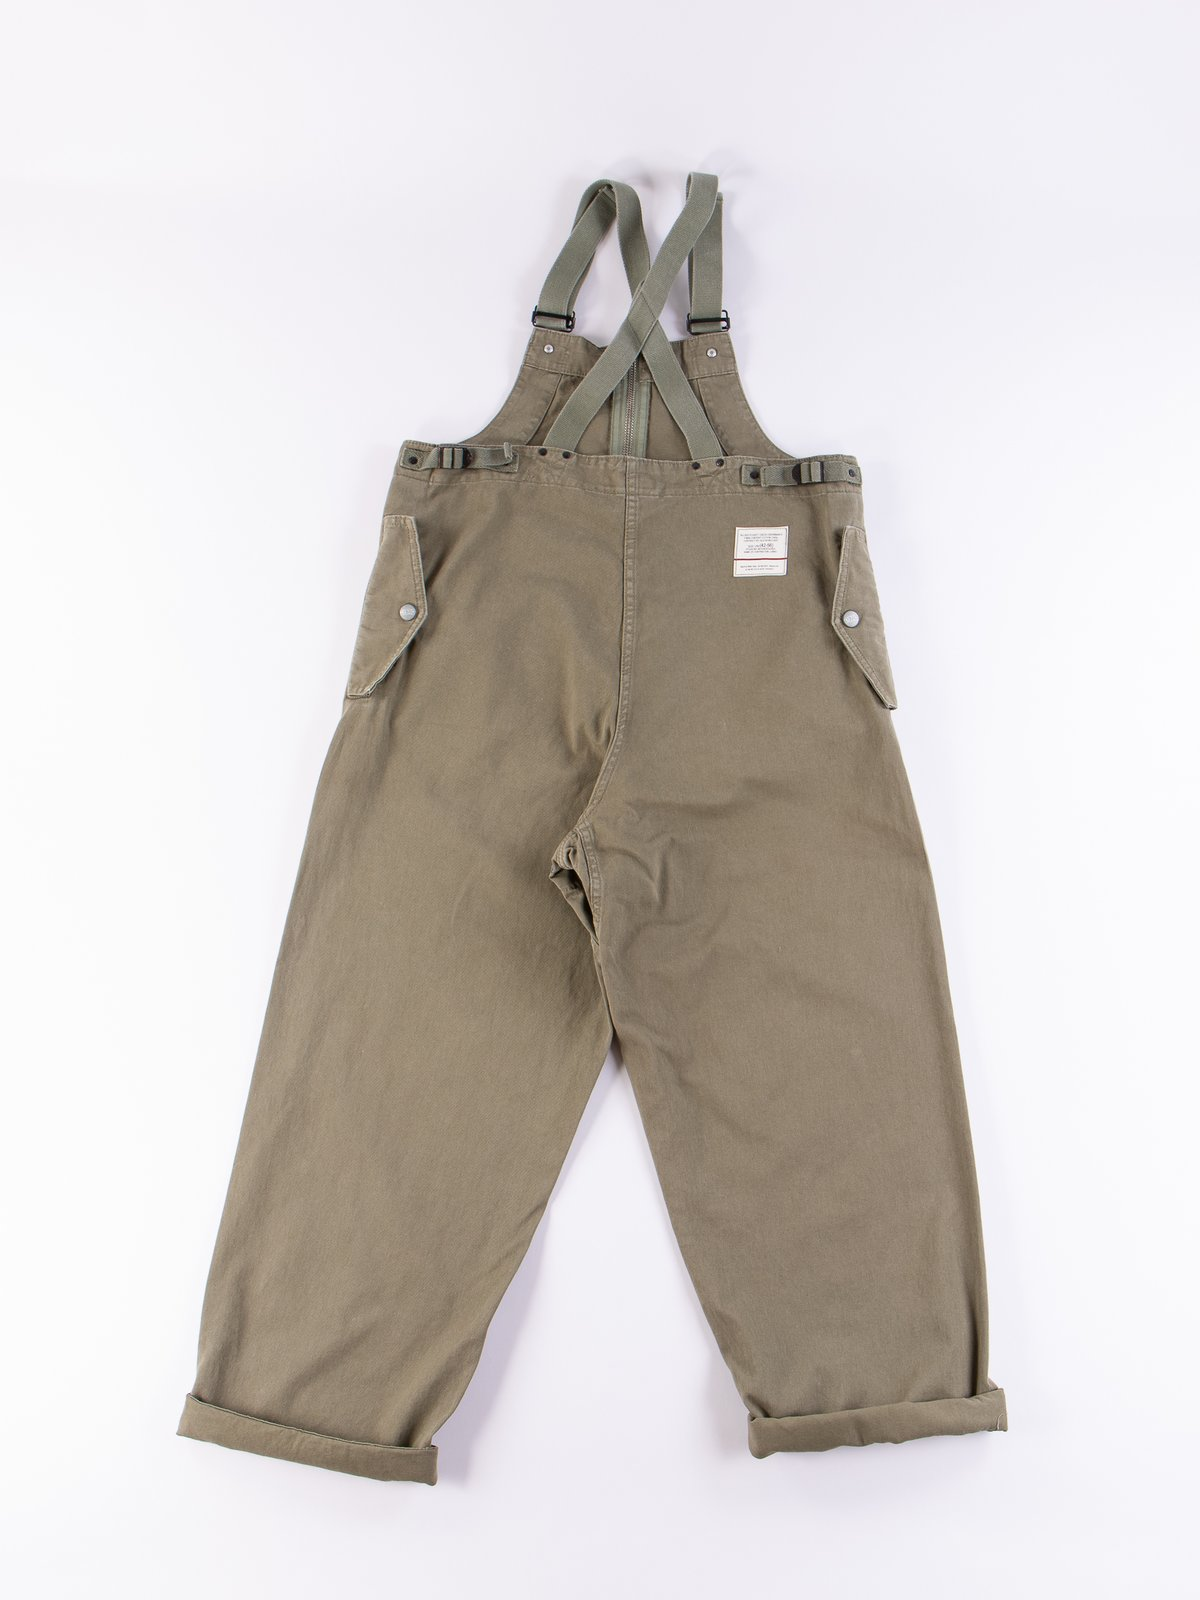 Lybro Washed Army Deck Waders - Image 6